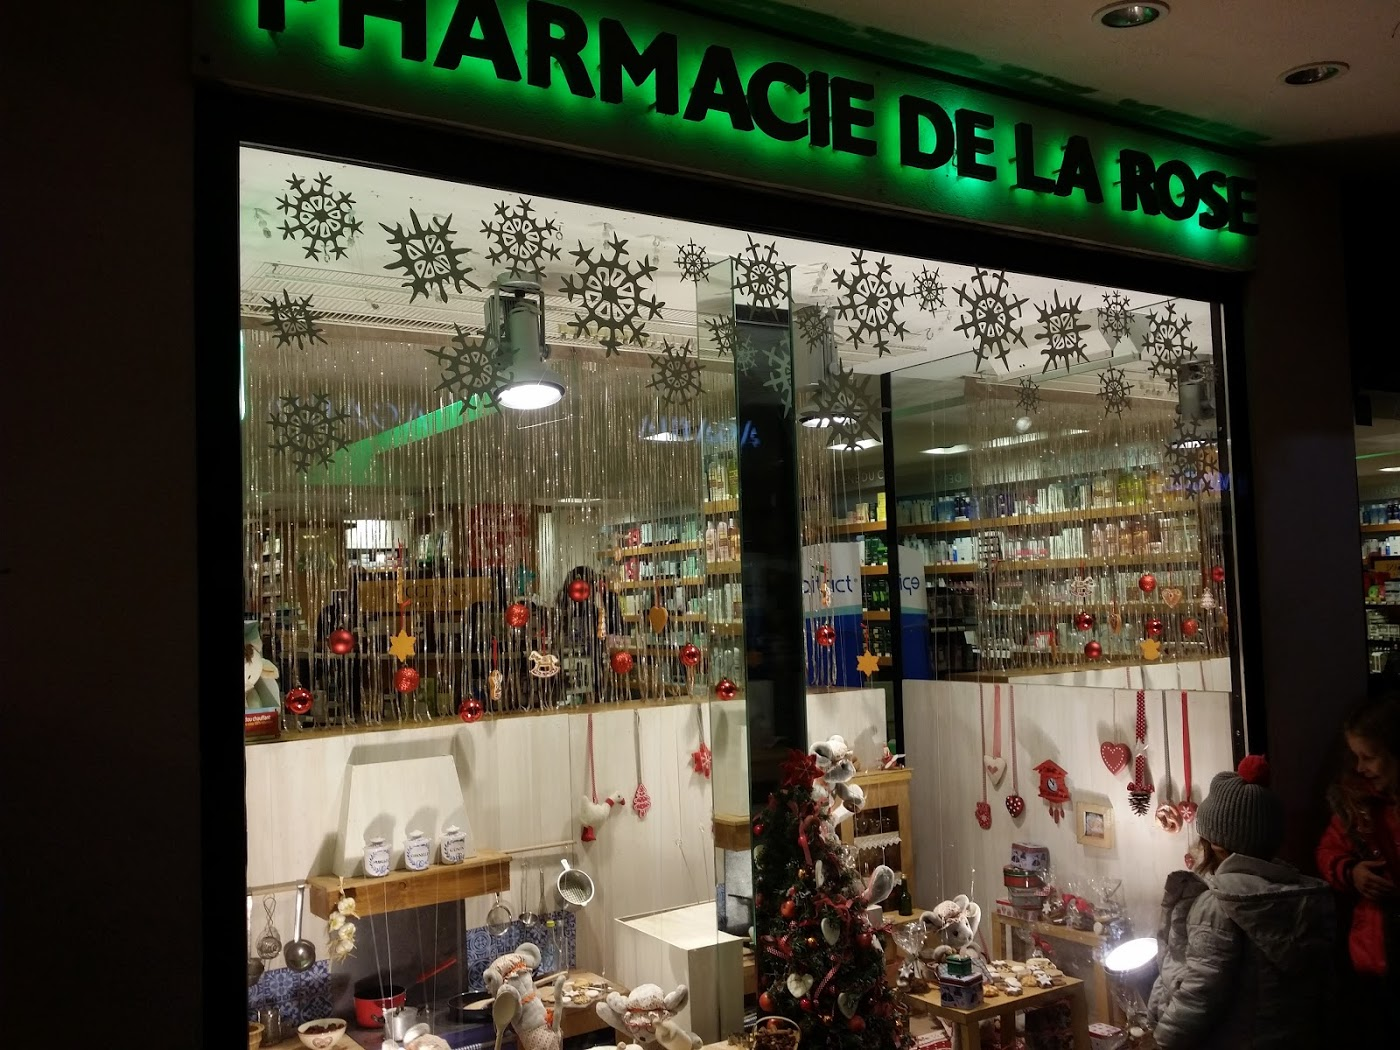 Pharmacie de la Rose